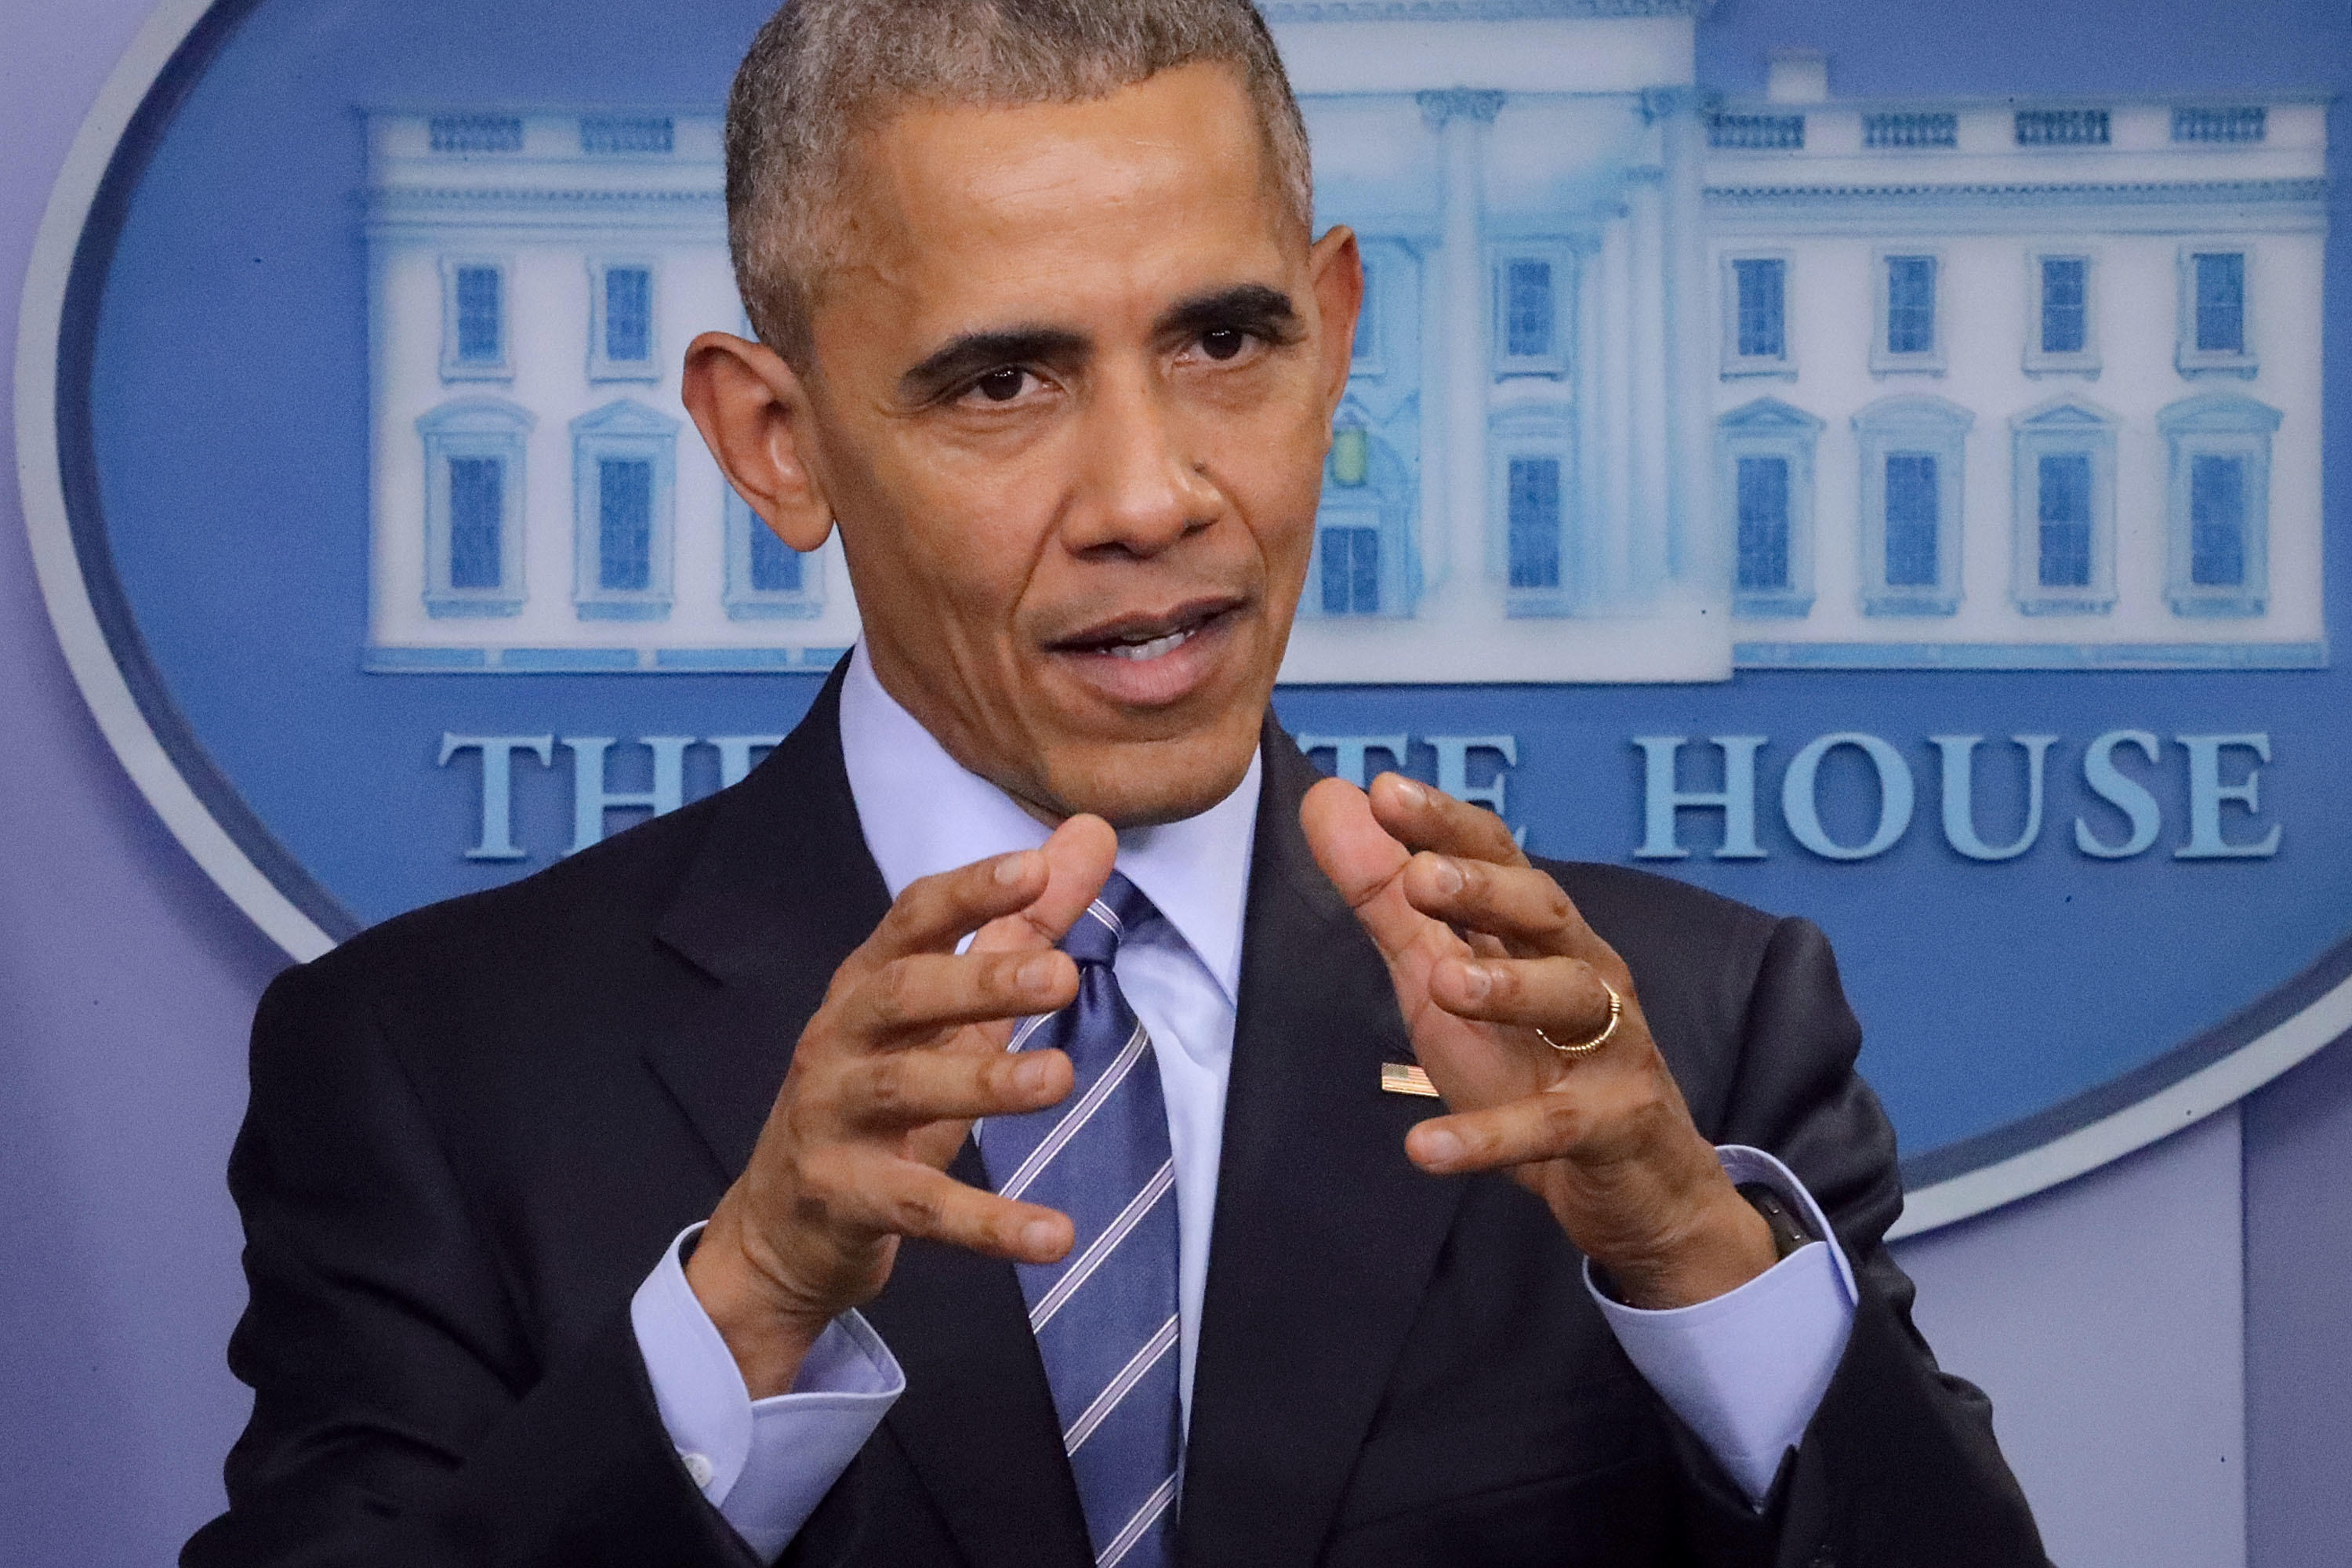 U.S. President Barack Obama speaks during a news conference in the Brady Press Briefing Room at the White House.